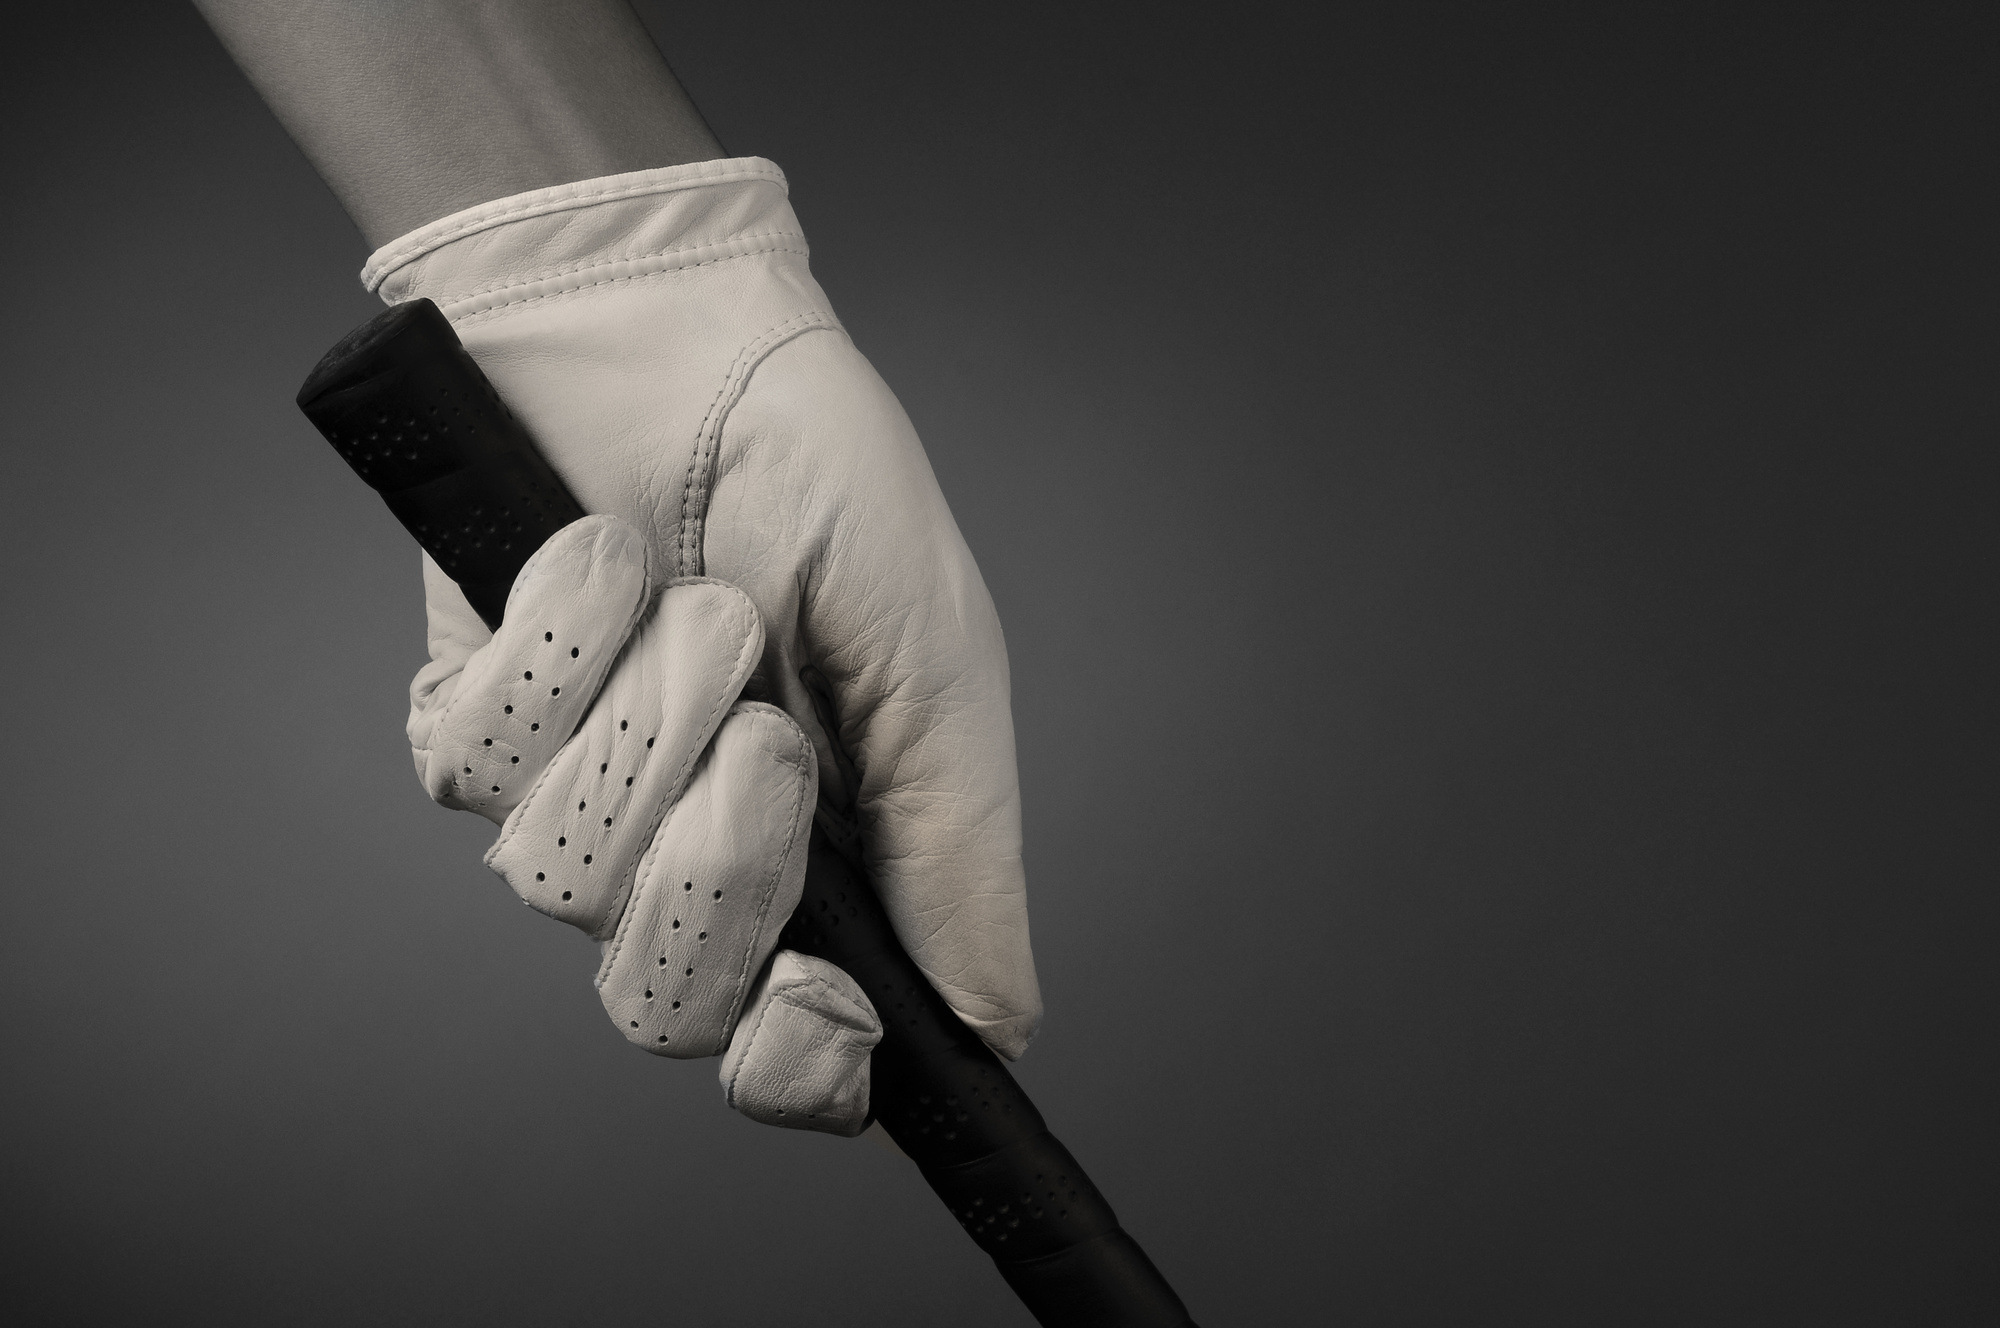 Closeup of a Golfers Gloved Hand on Club